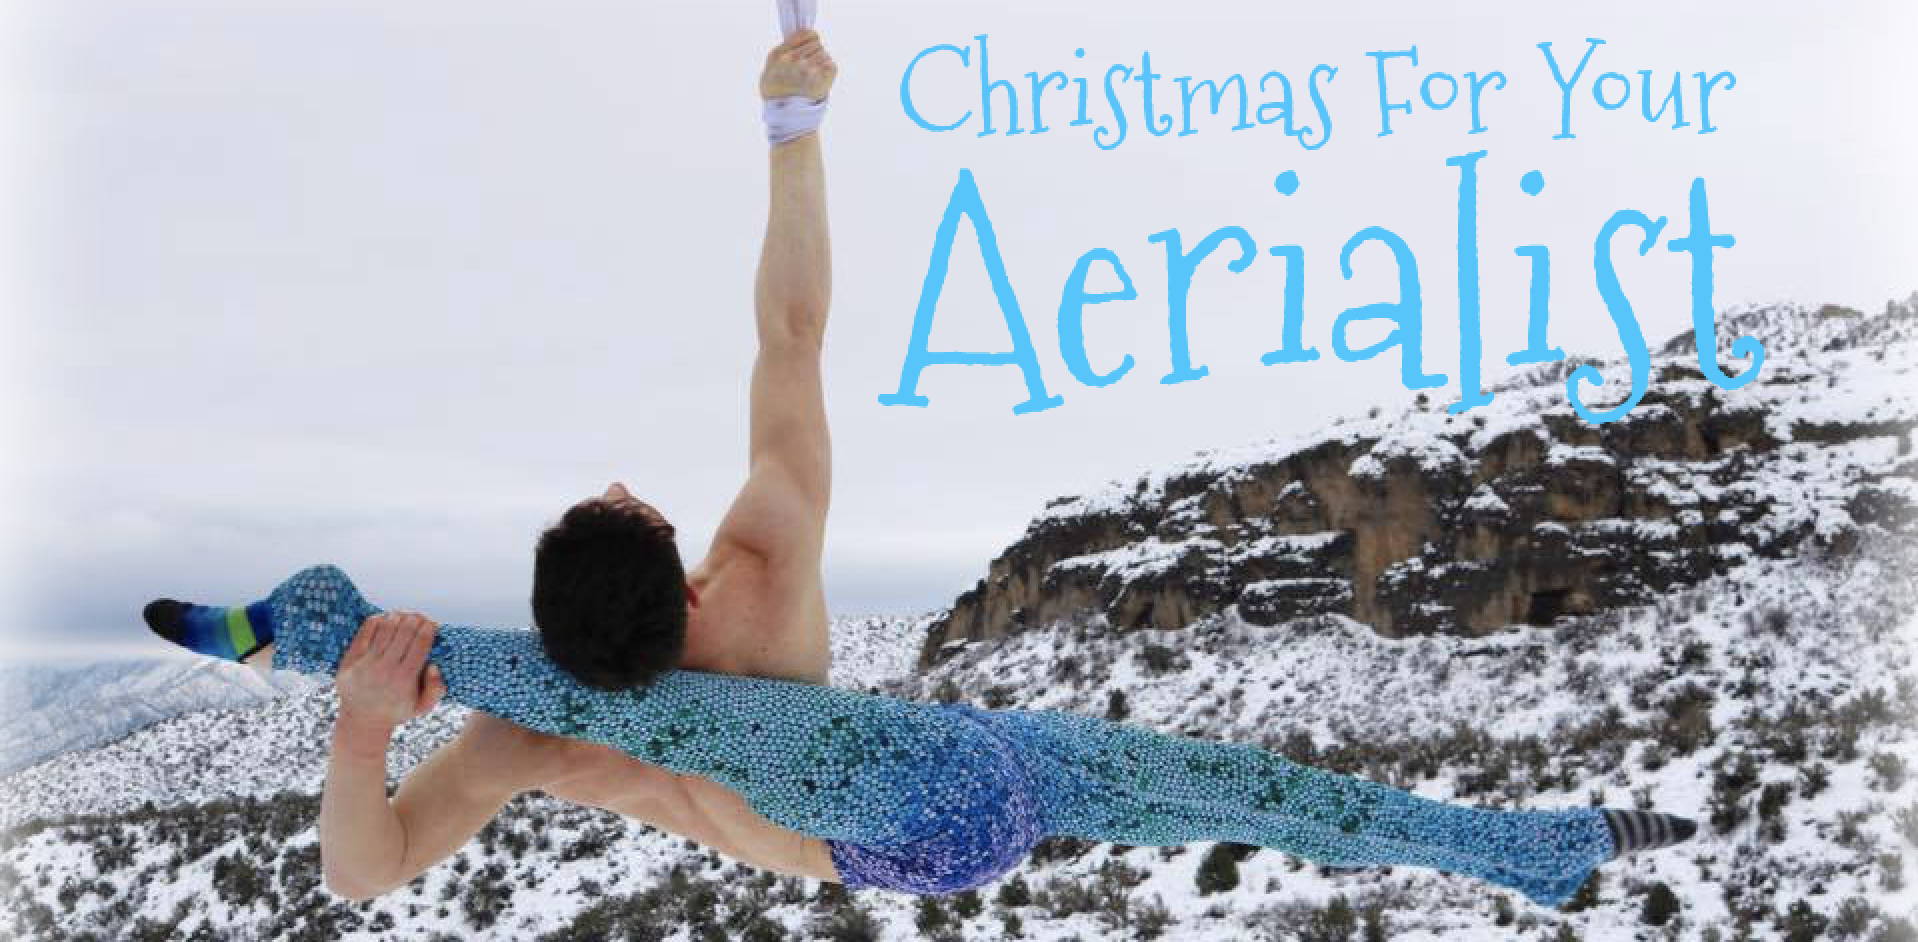 Christmas For Your Aerialist